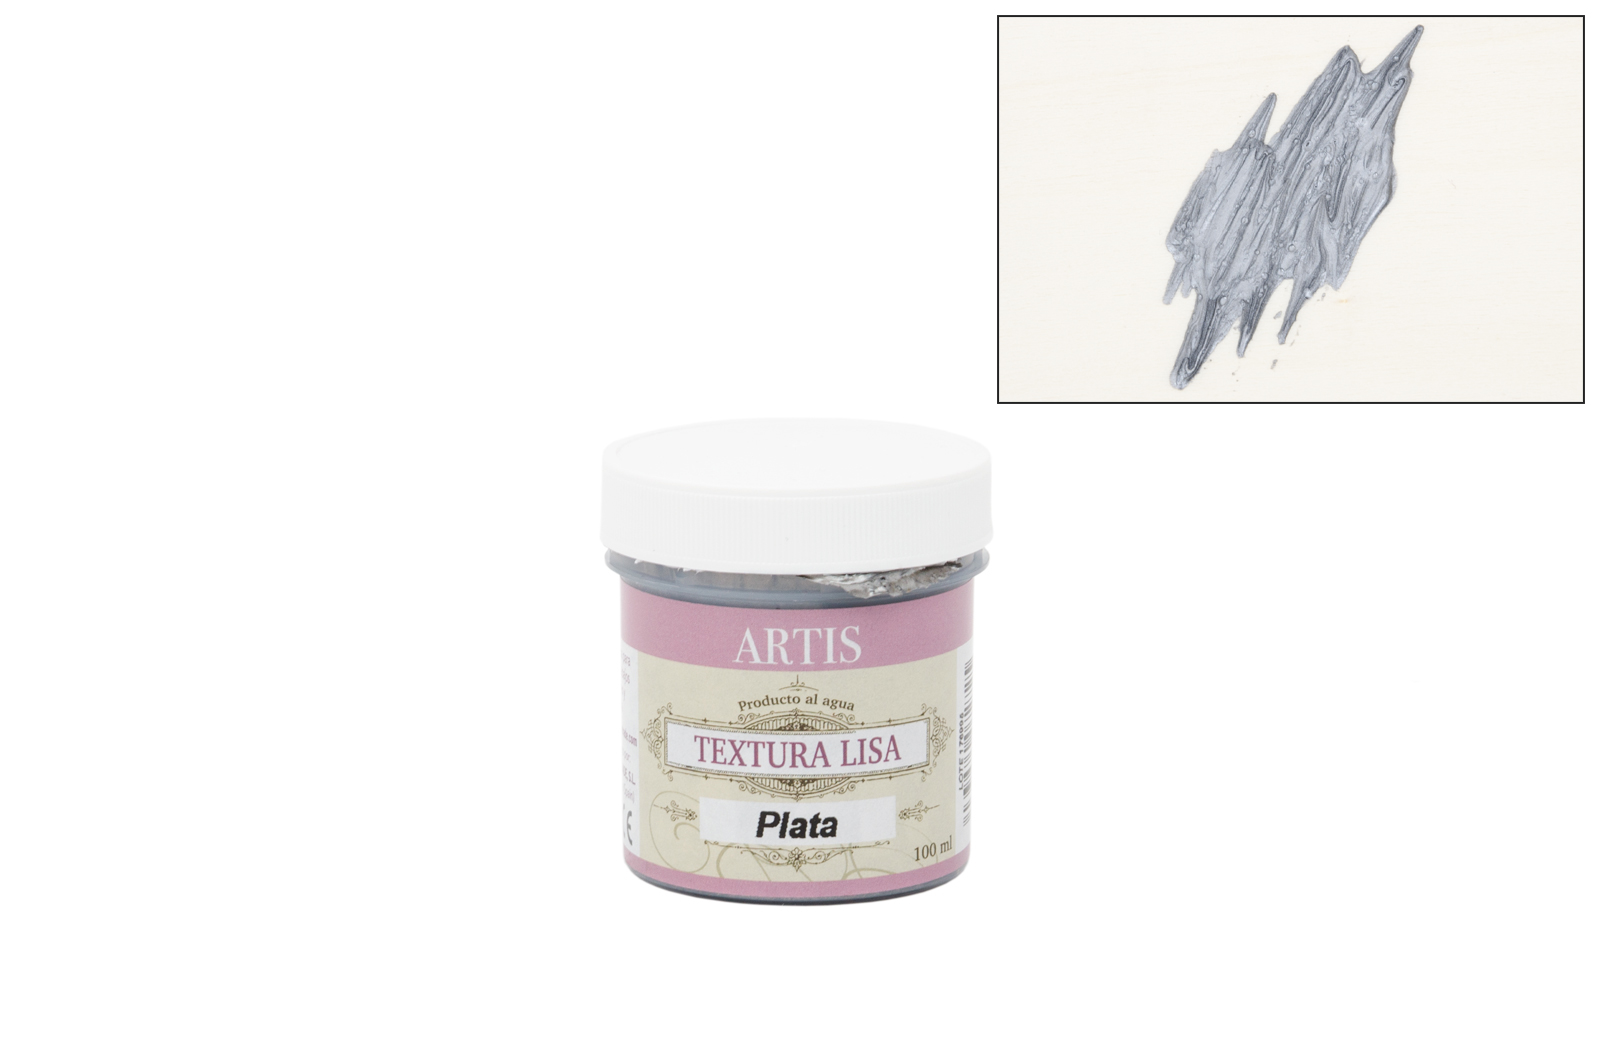 TEXTURA LISA PRATA 100ML 0807047